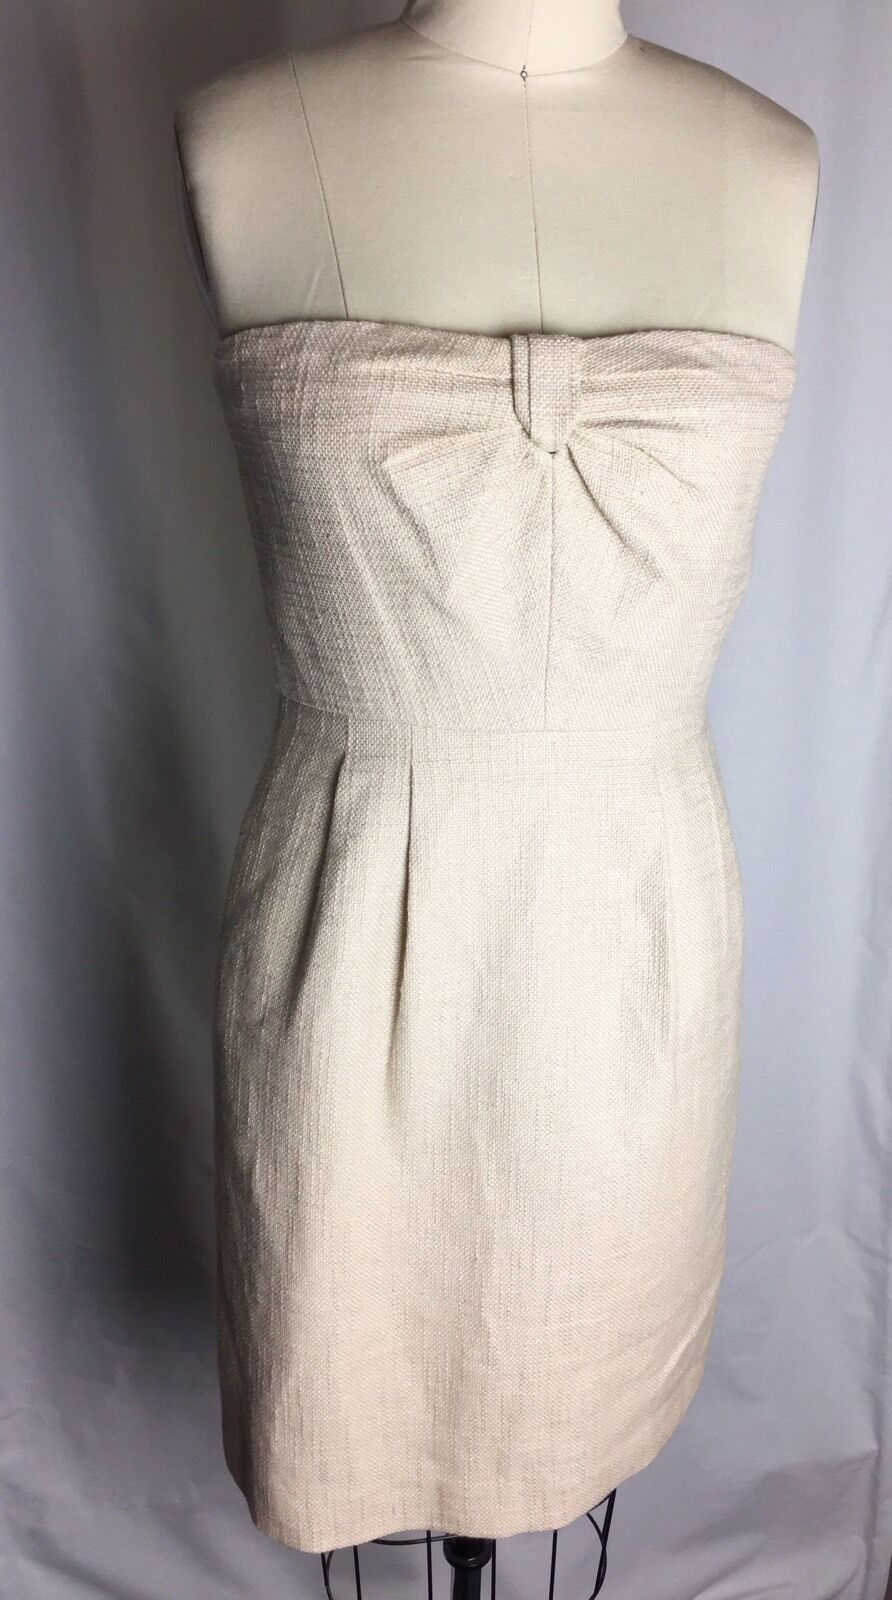 NWOT J CREW gold & Baige Linen Strapless Dress Size 4 Metallic